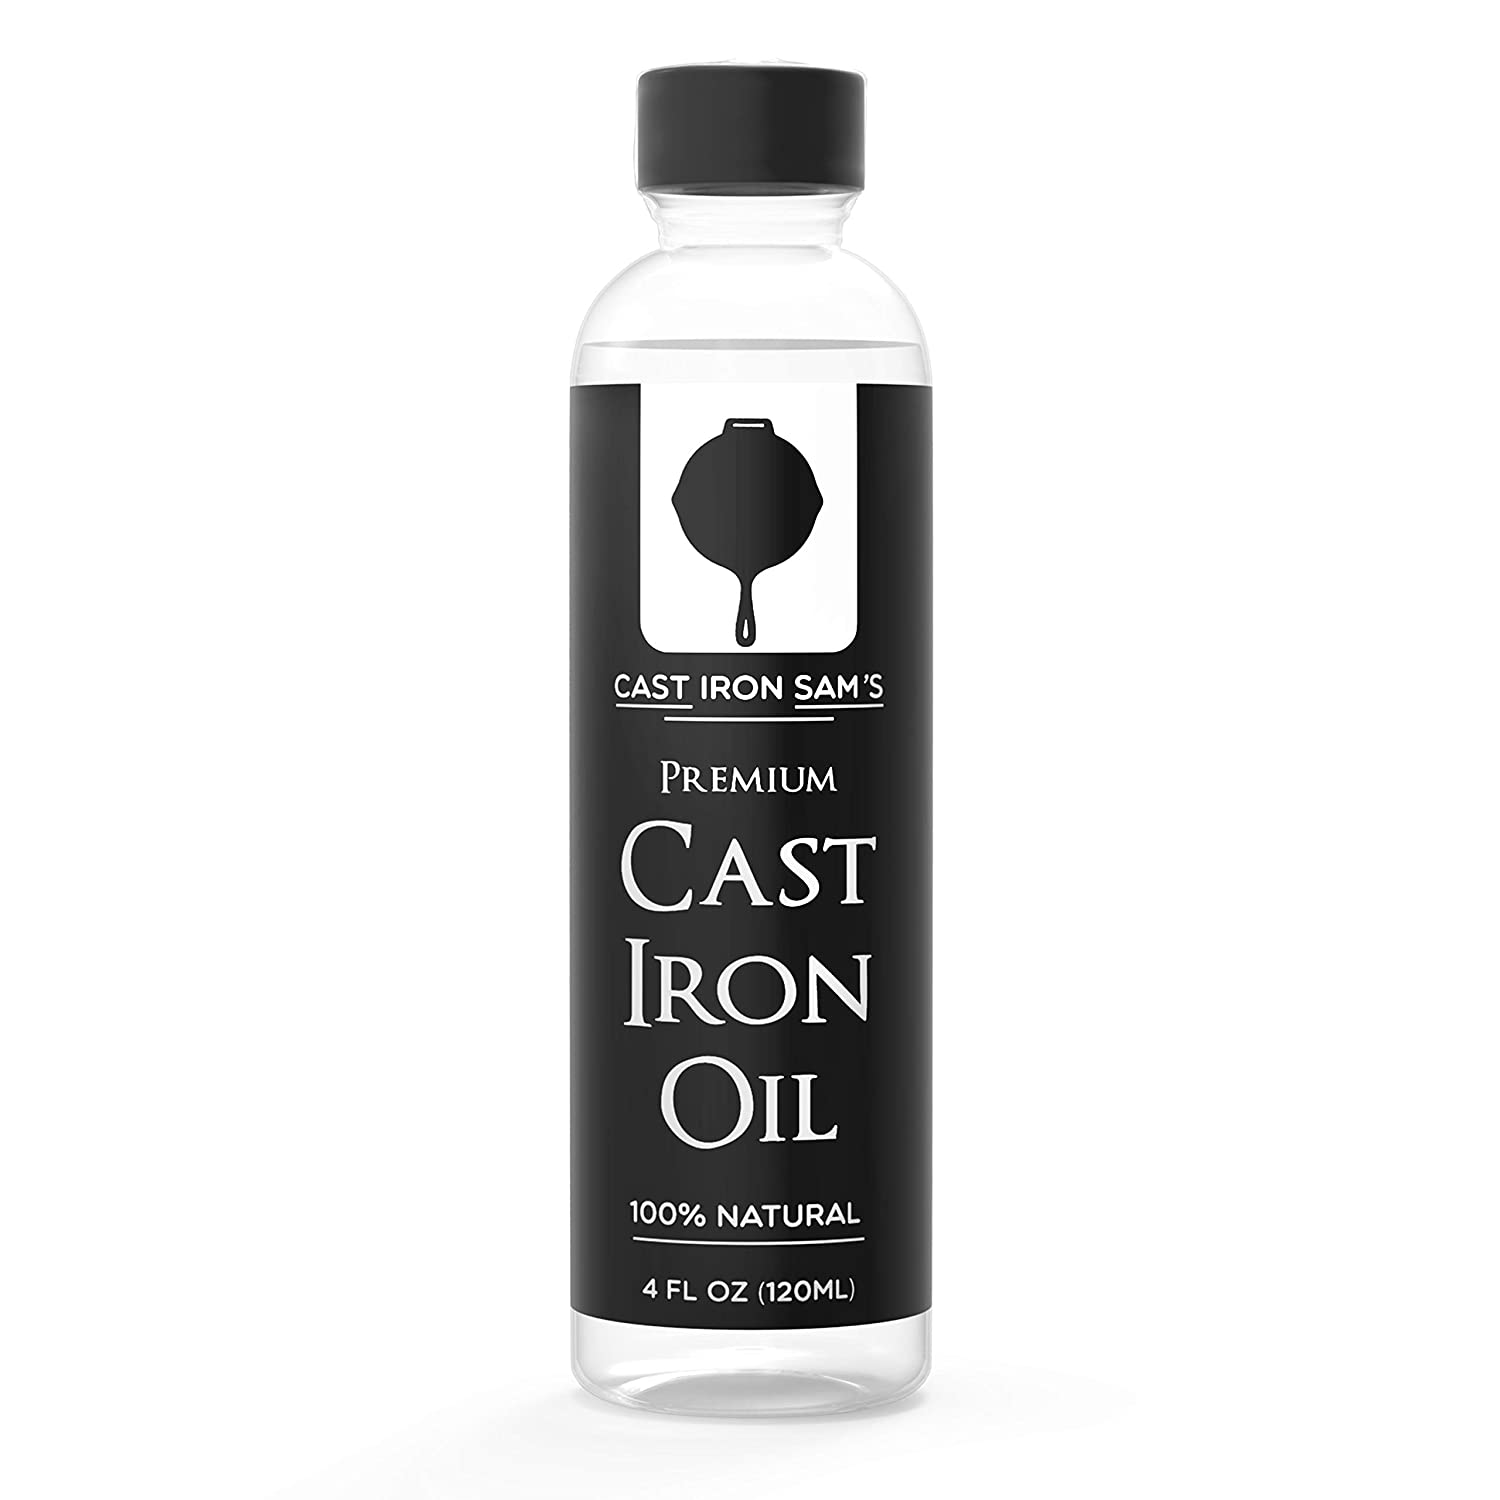 Cast Iron Sam's 100% Natural Cast Iron Seasoning Oil - Clean, Condition, Protect and Care for Your Cookware – Cast Iron Oil for All Iron Pans, Skillets, Griddles, Dutch Ovens, Woks. Light and Preve